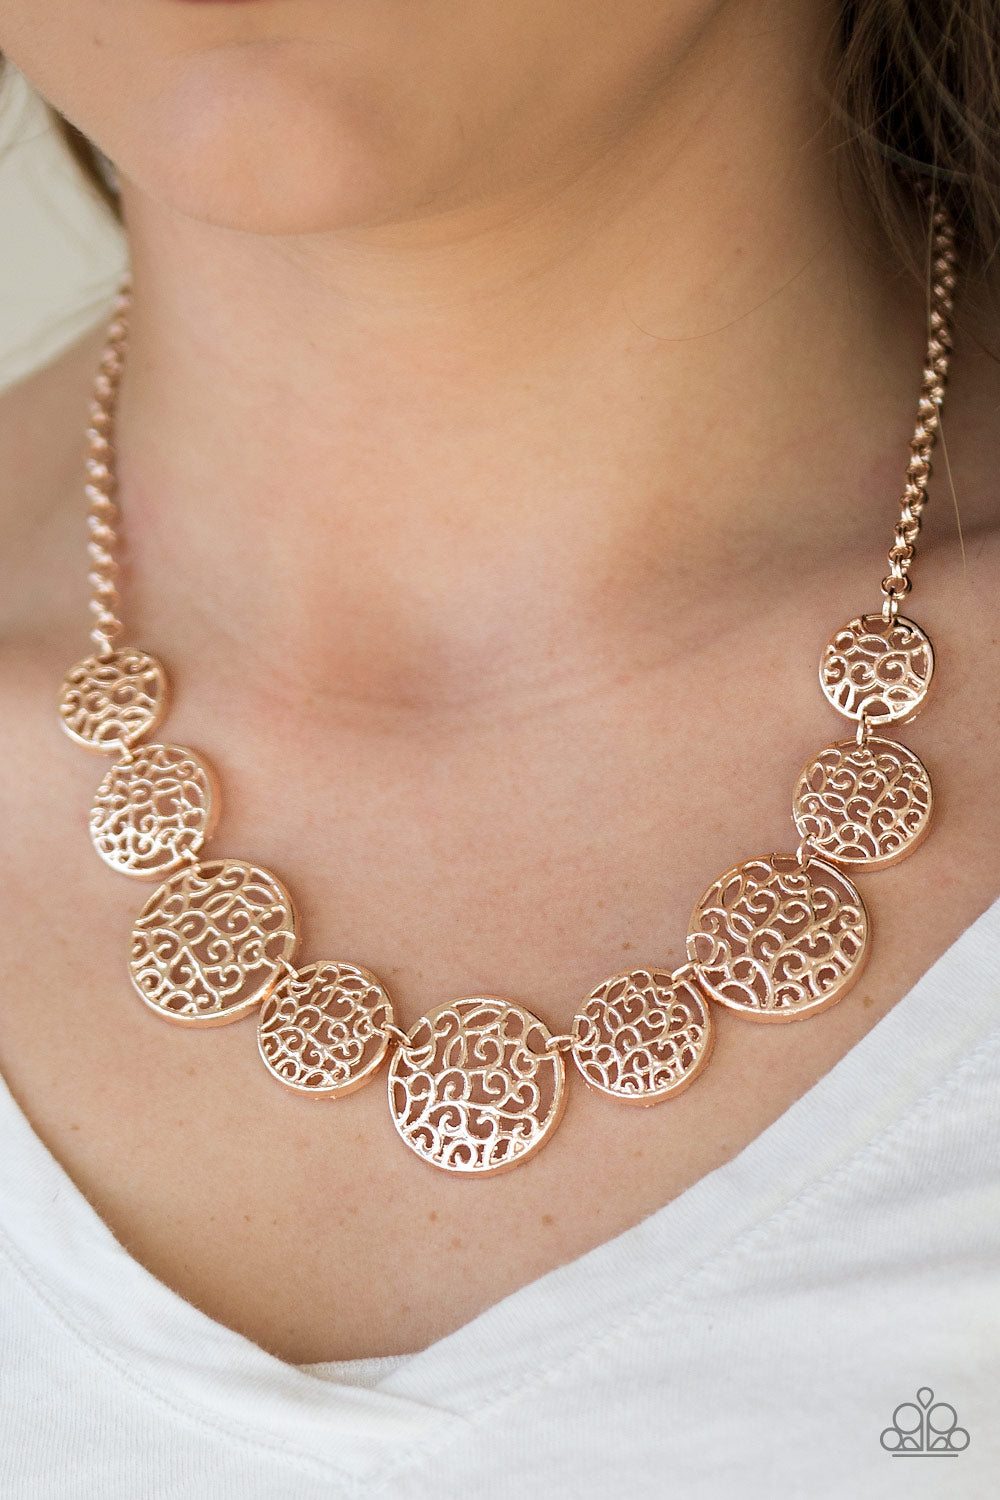 All the Time in the Whirl - rose gold - Paparazzi necklace